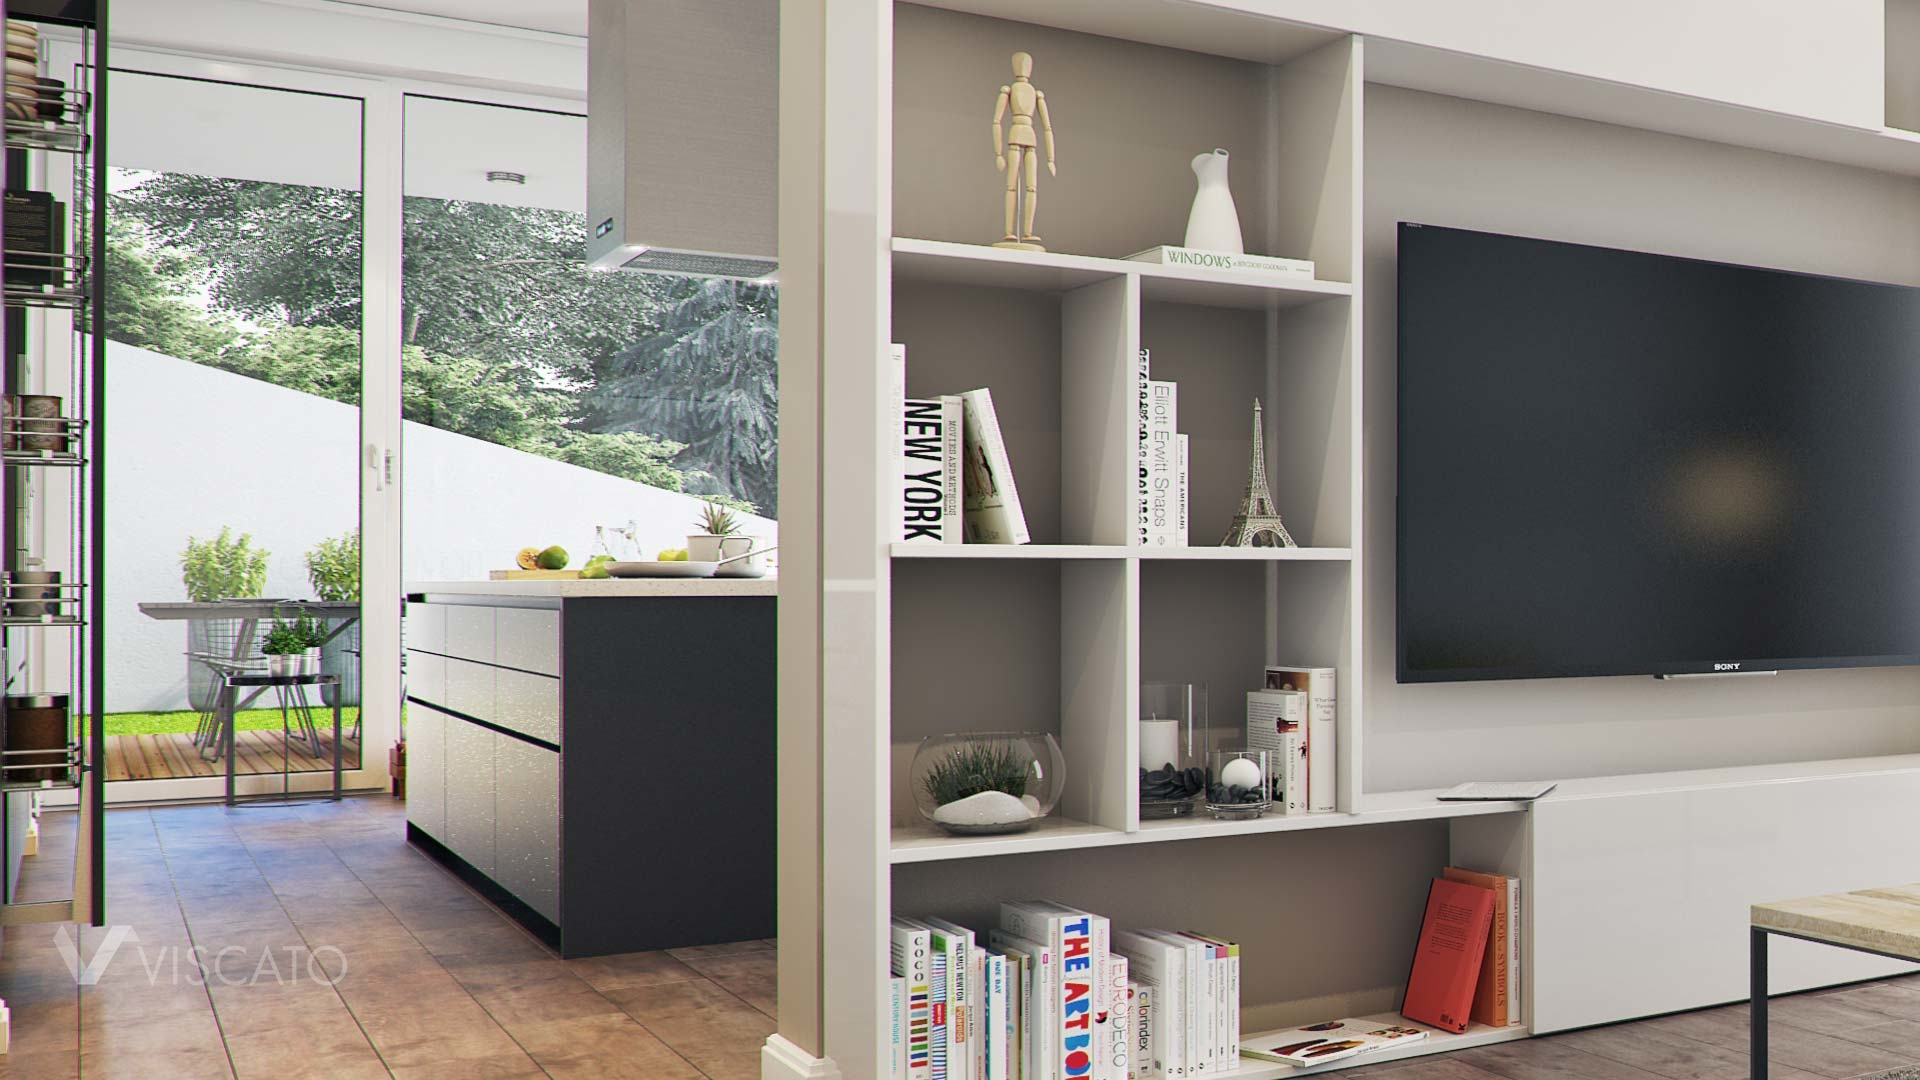 detailed 3d interior visualisation of a modern living room with a Tv set